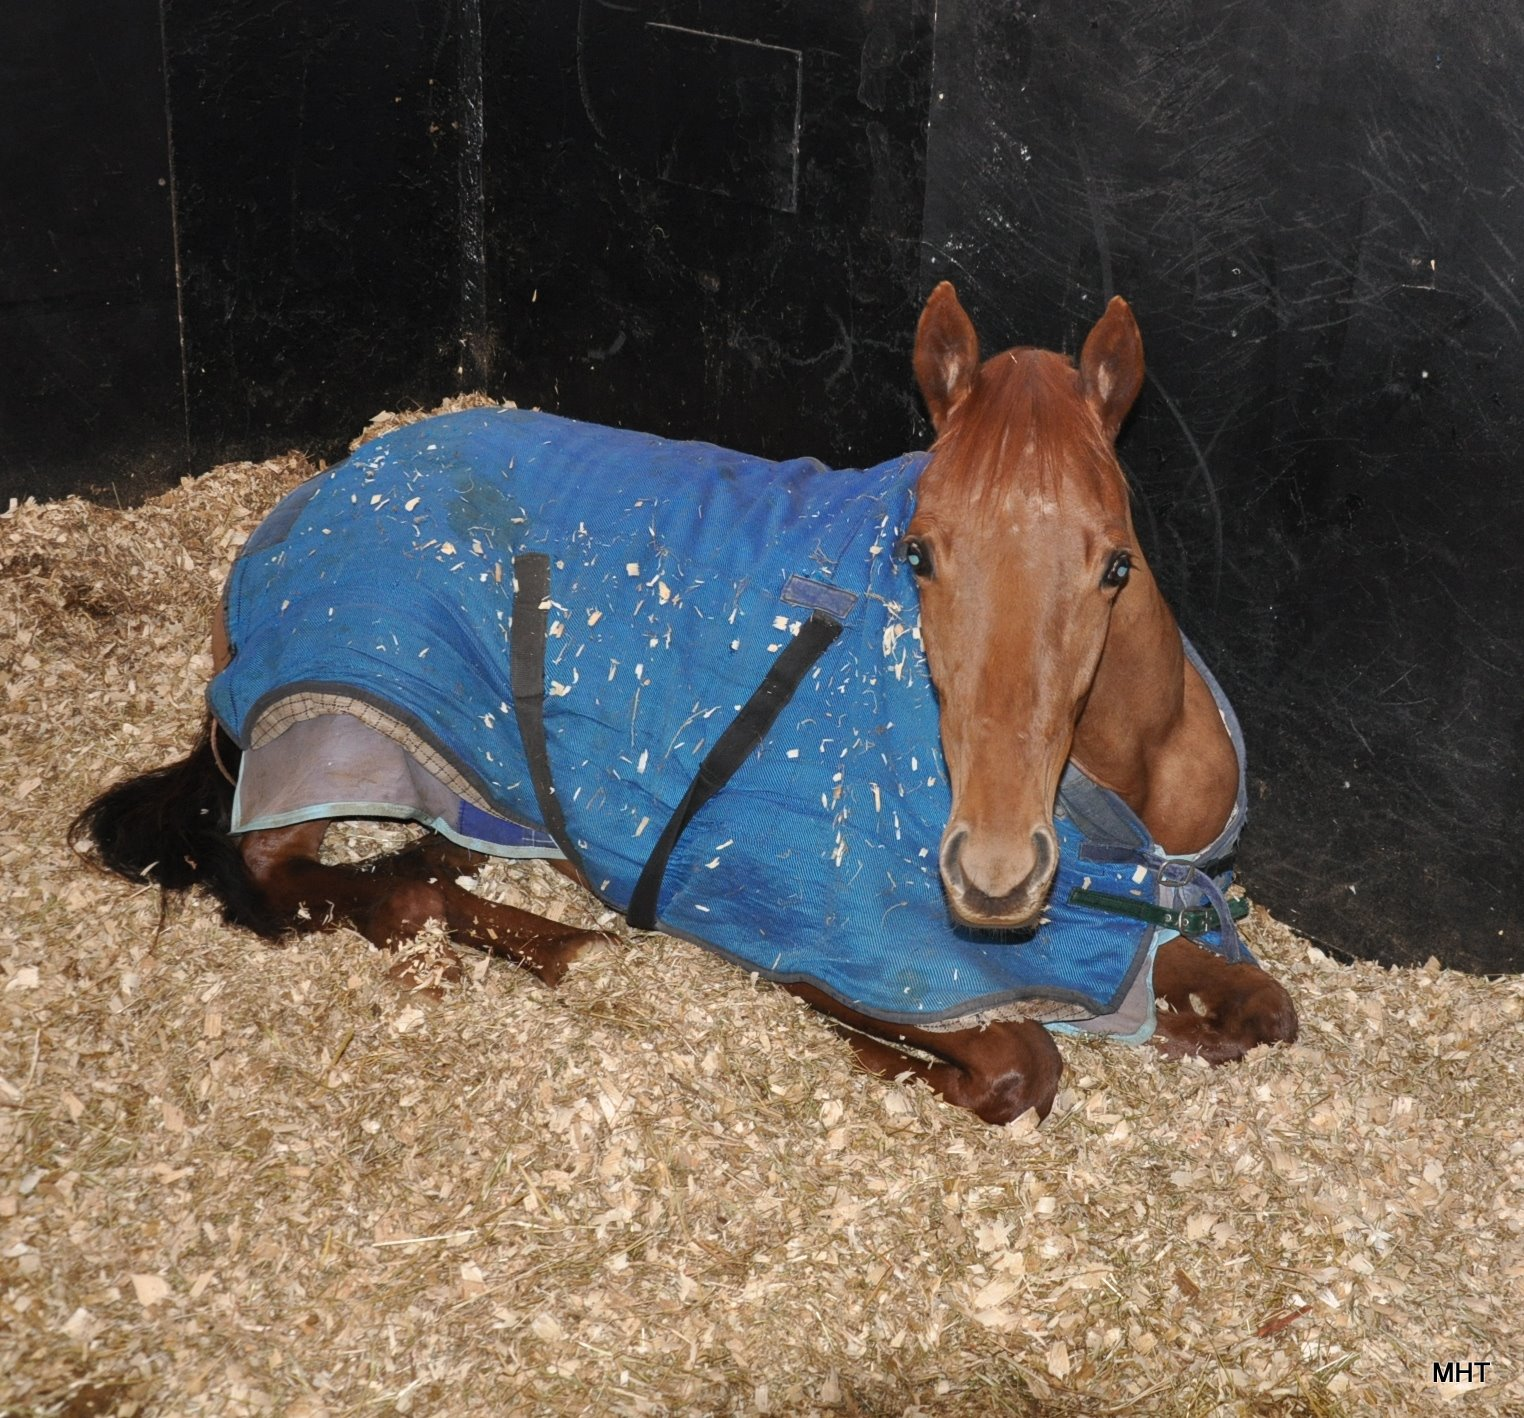 22-_Haafd_filly_relaxing